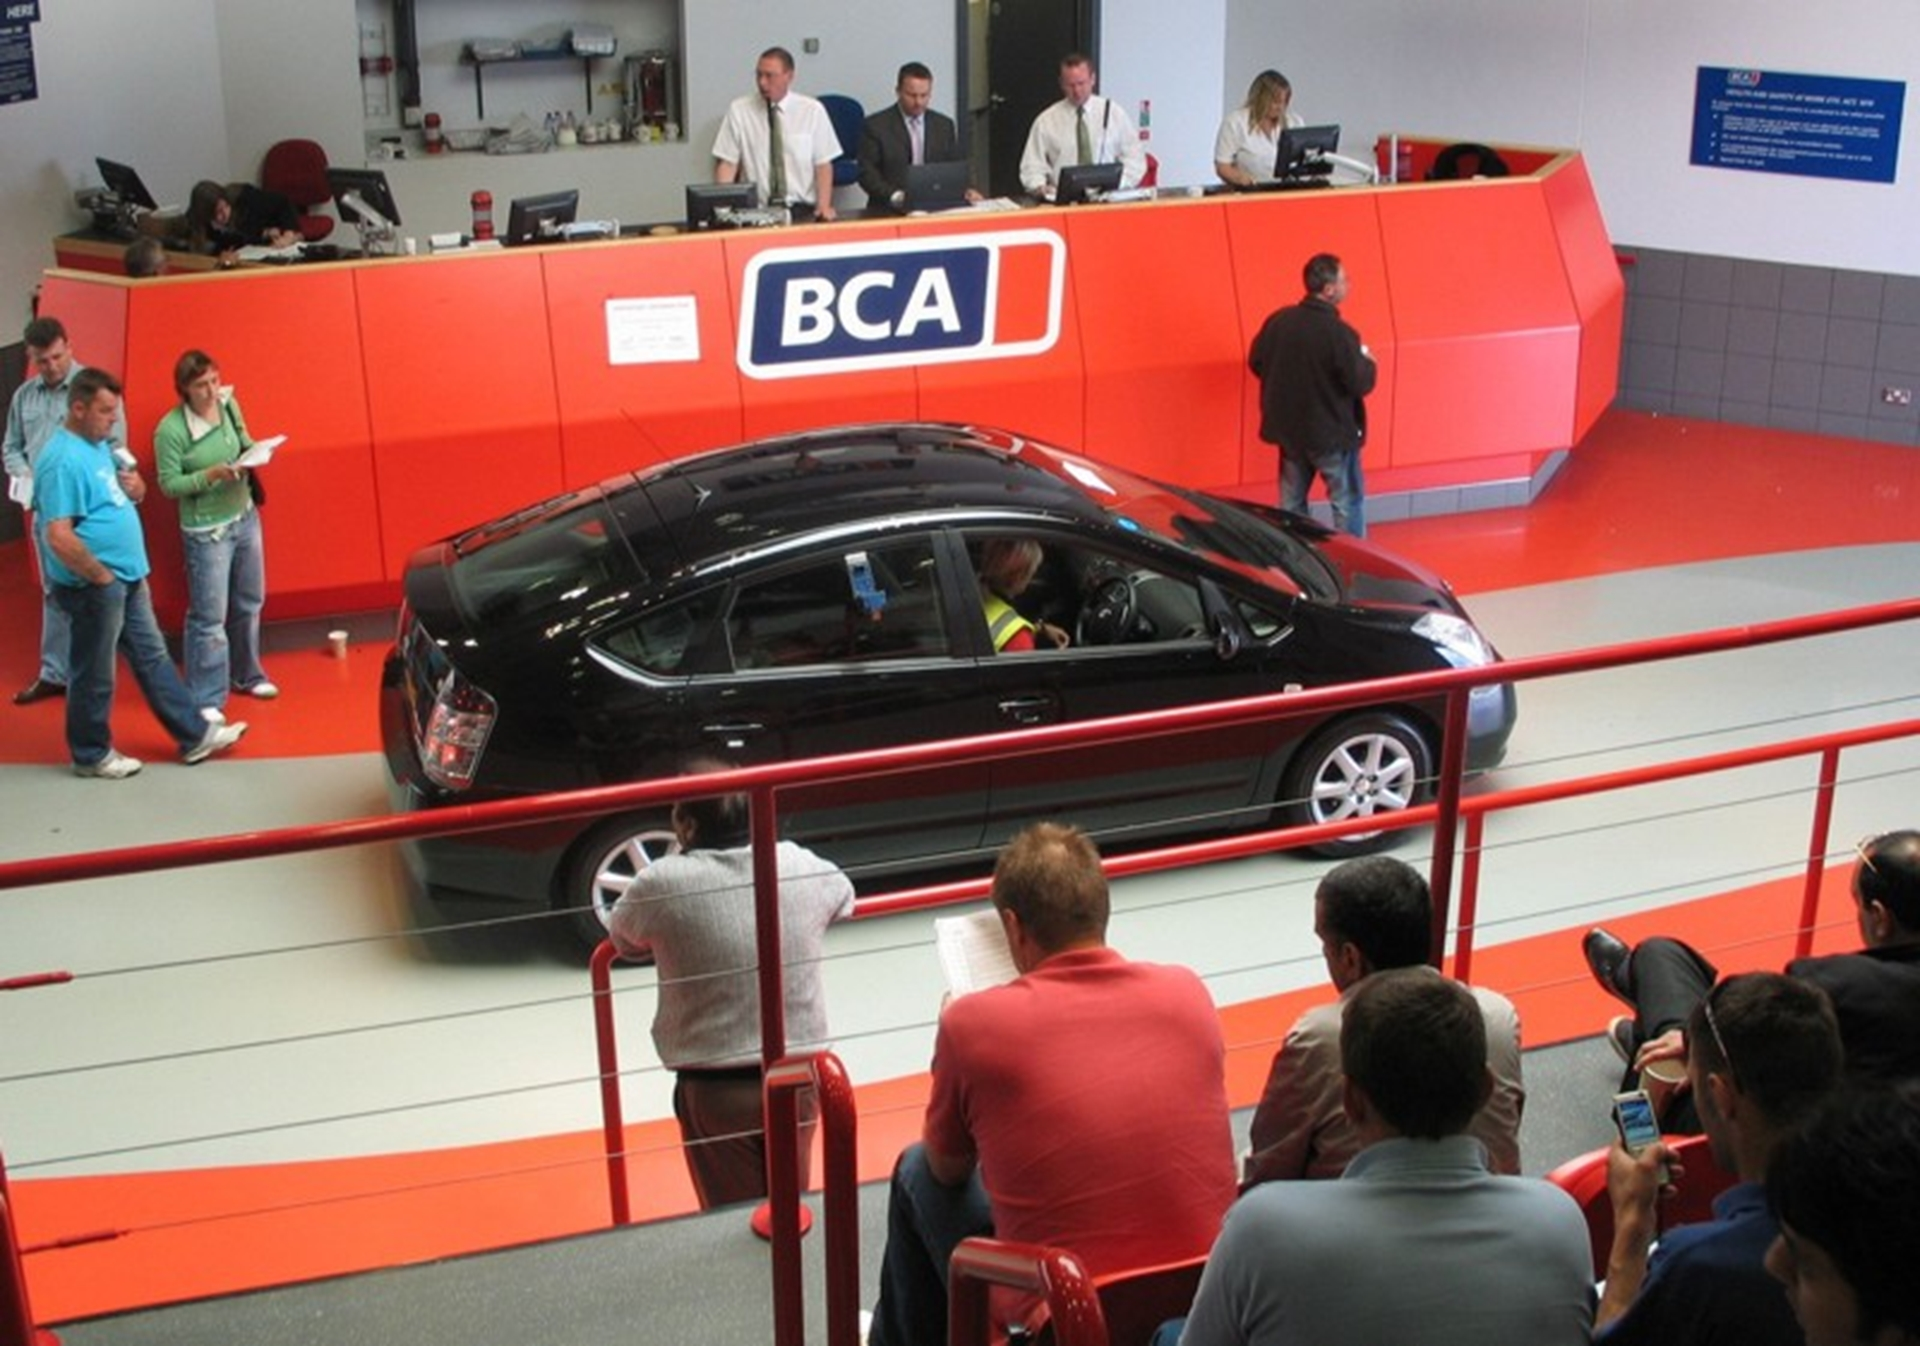 Lex Autolease & BCA stage first ever auction dedicated to Hybrids